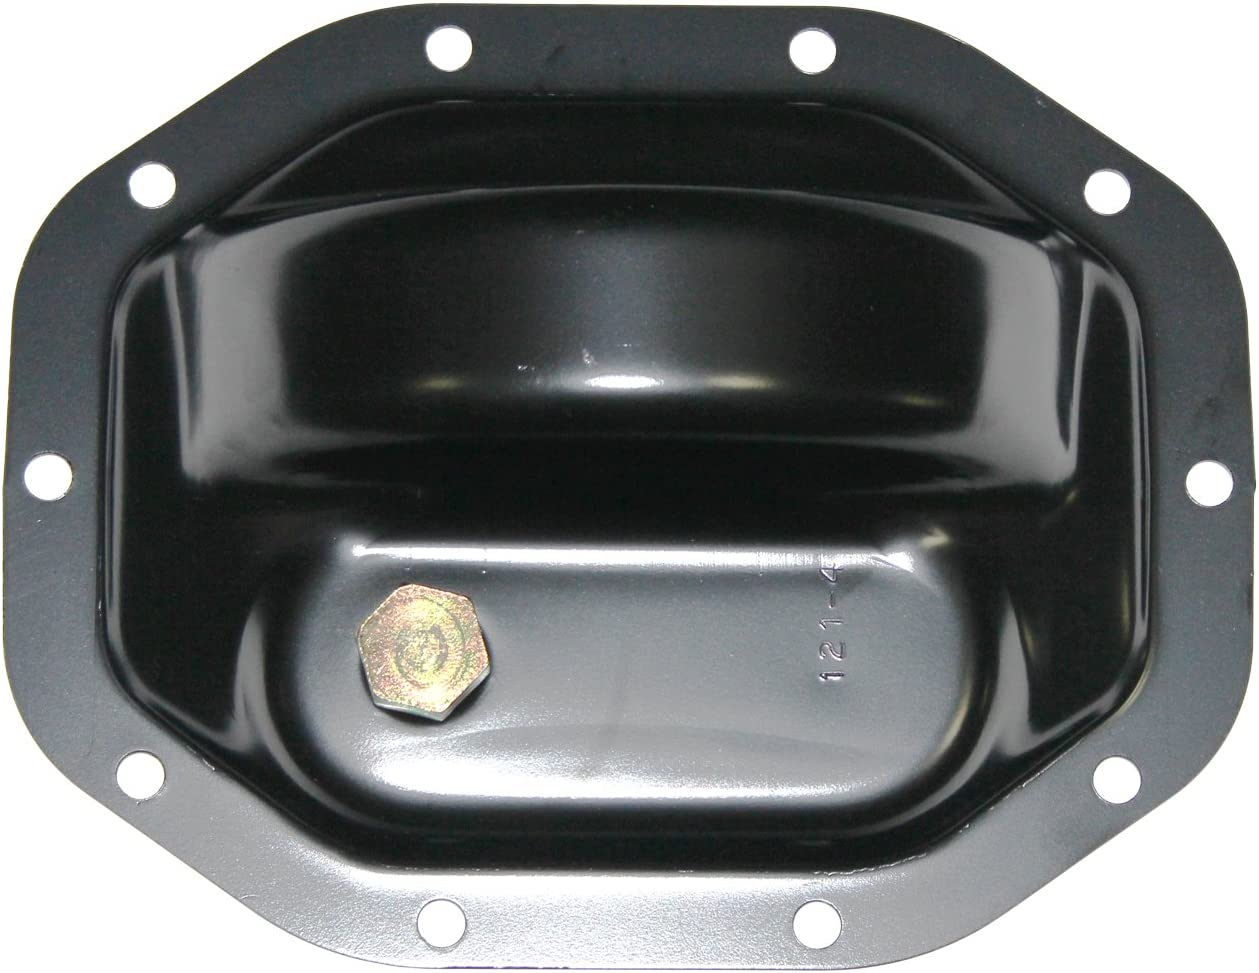 EZ-GO 601085 Carrier Cover and Fill Plug Kit for Rear Axles 2000